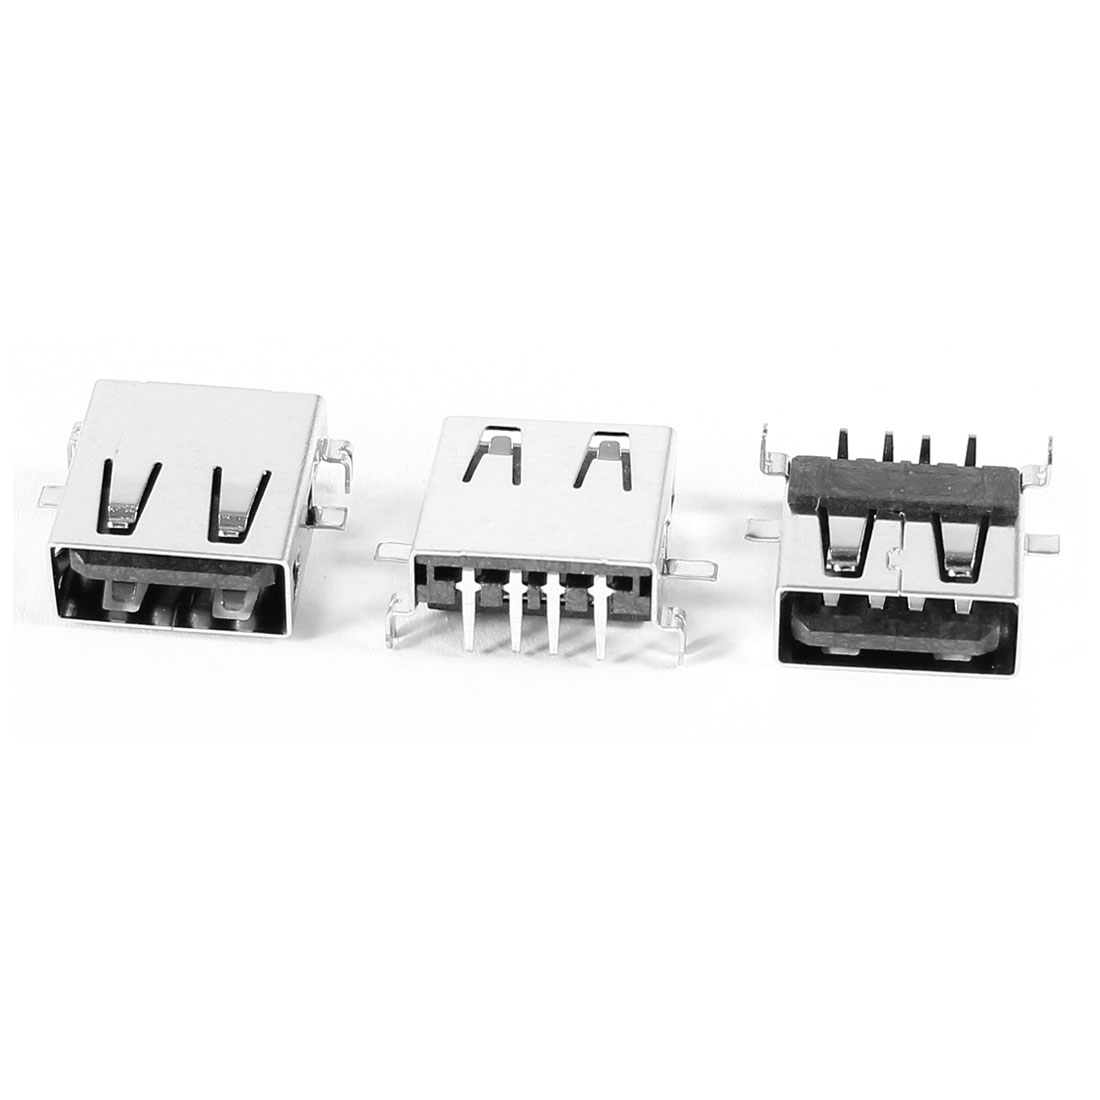 3 Pcs USB Type A Female 4 Pin Right Angle Jack Solder Socket Connector